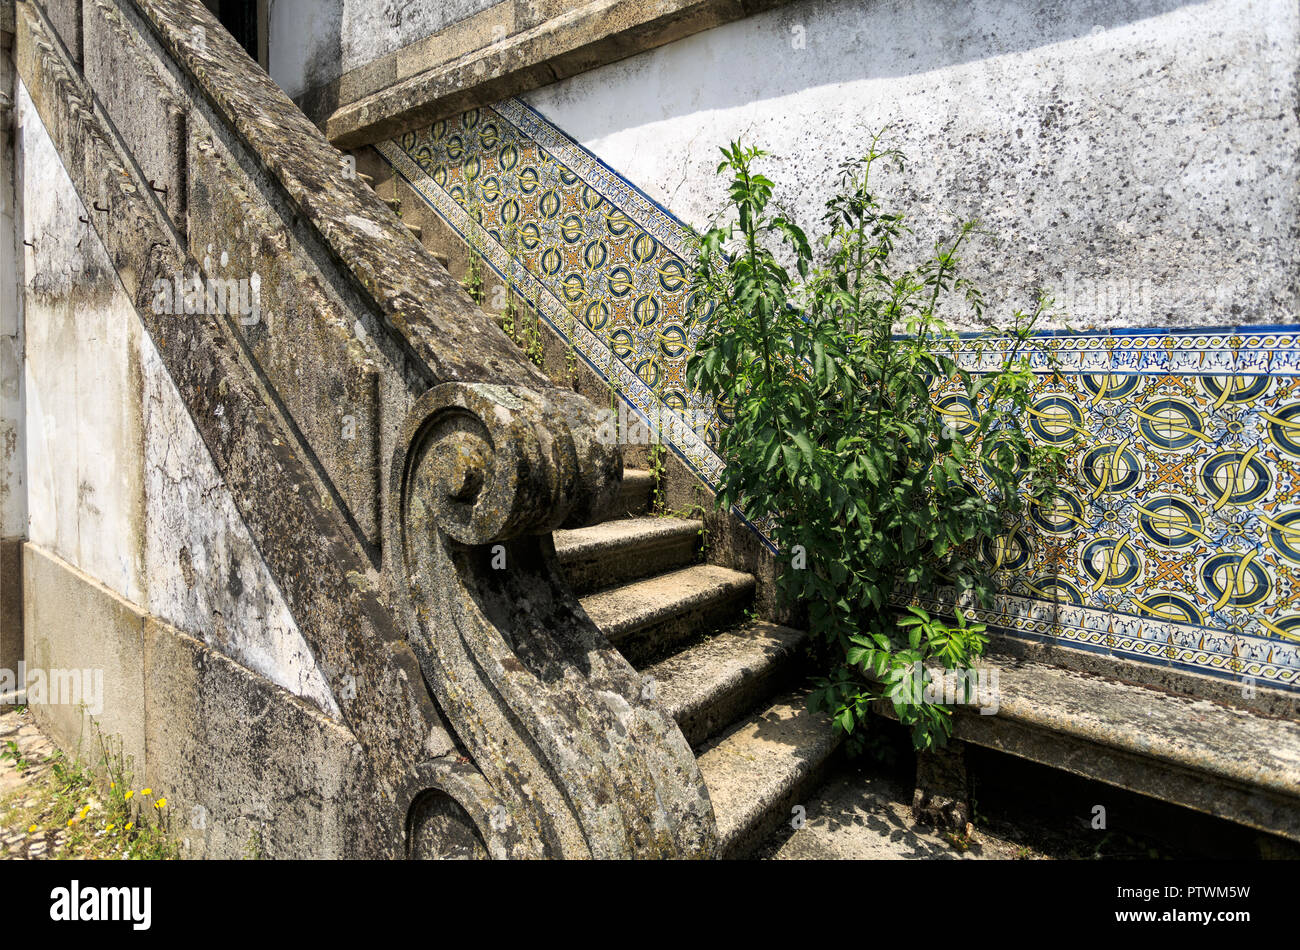 Detail Of A Beautiful Granite Stone Staircase With Decorating Tiles